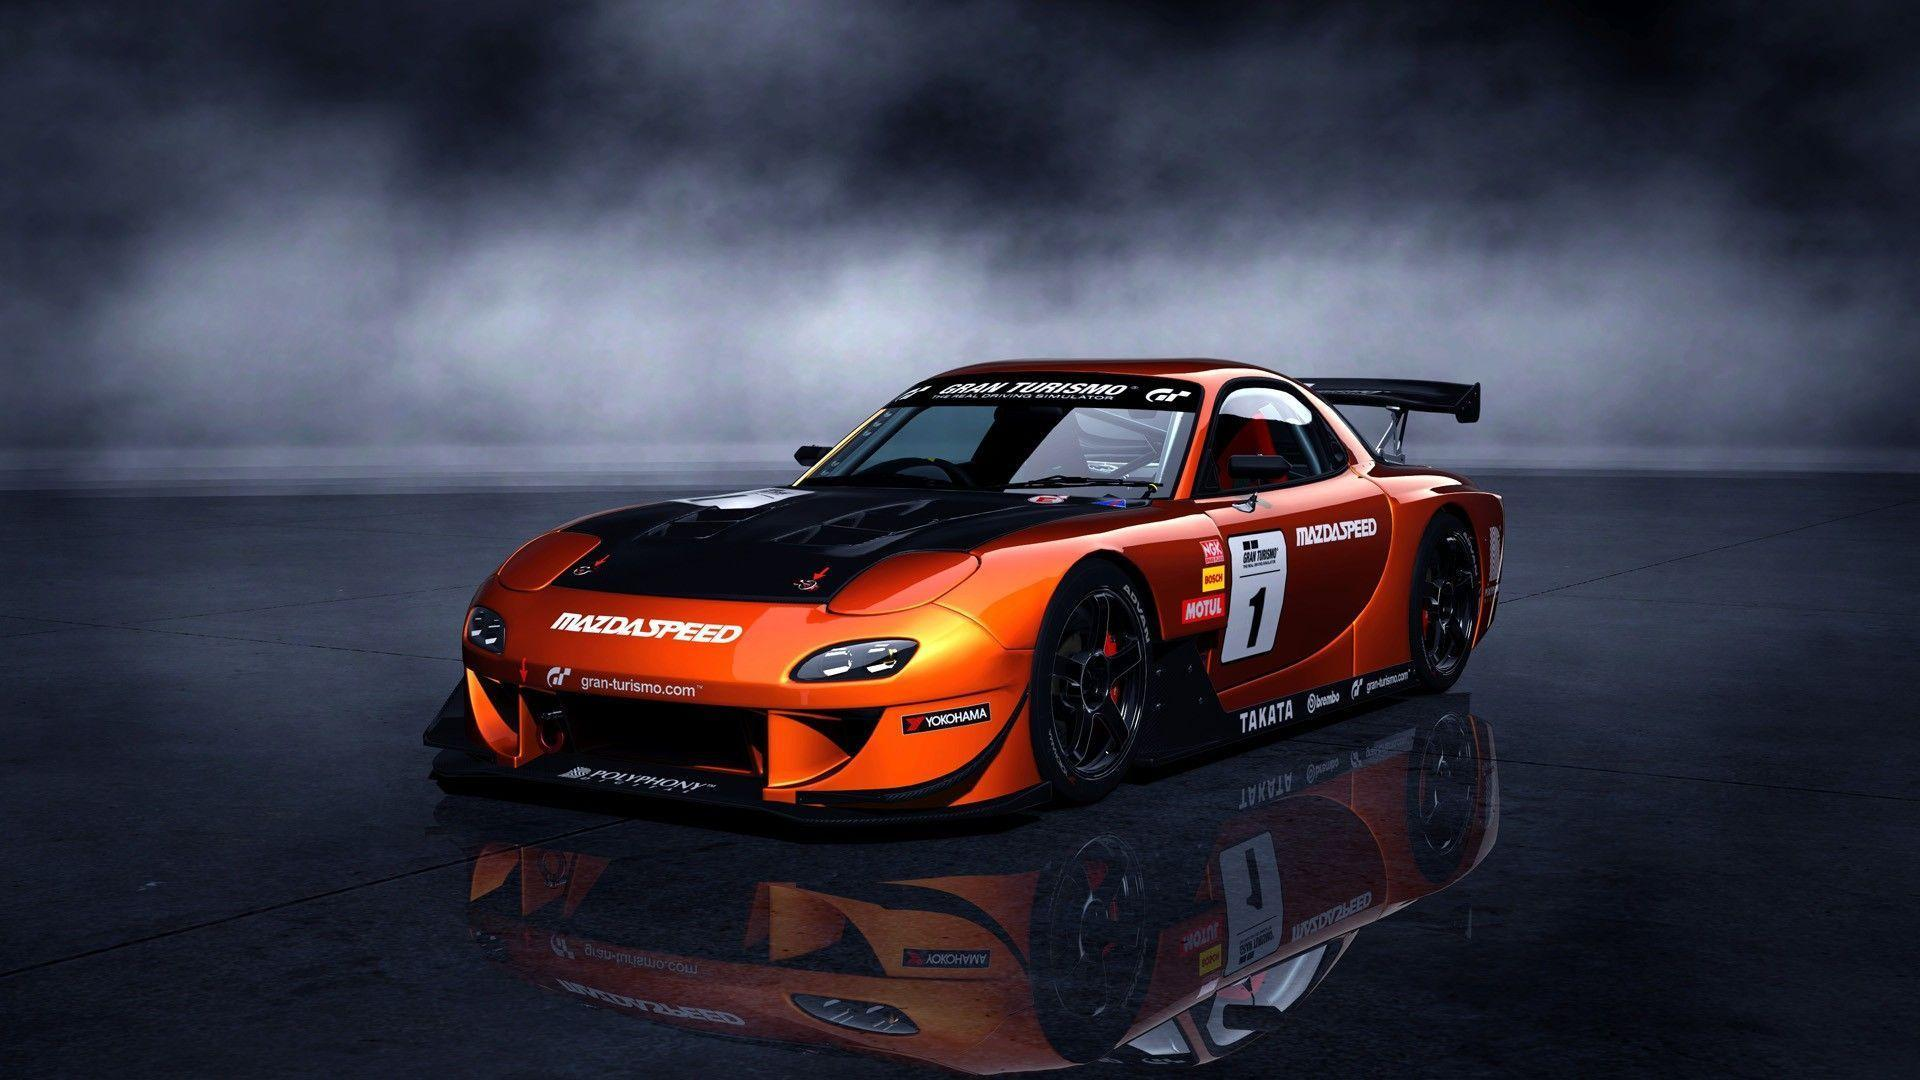 mazda rx 7 wallpapers wallpaper cave. Black Bedroom Furniture Sets. Home Design Ideas